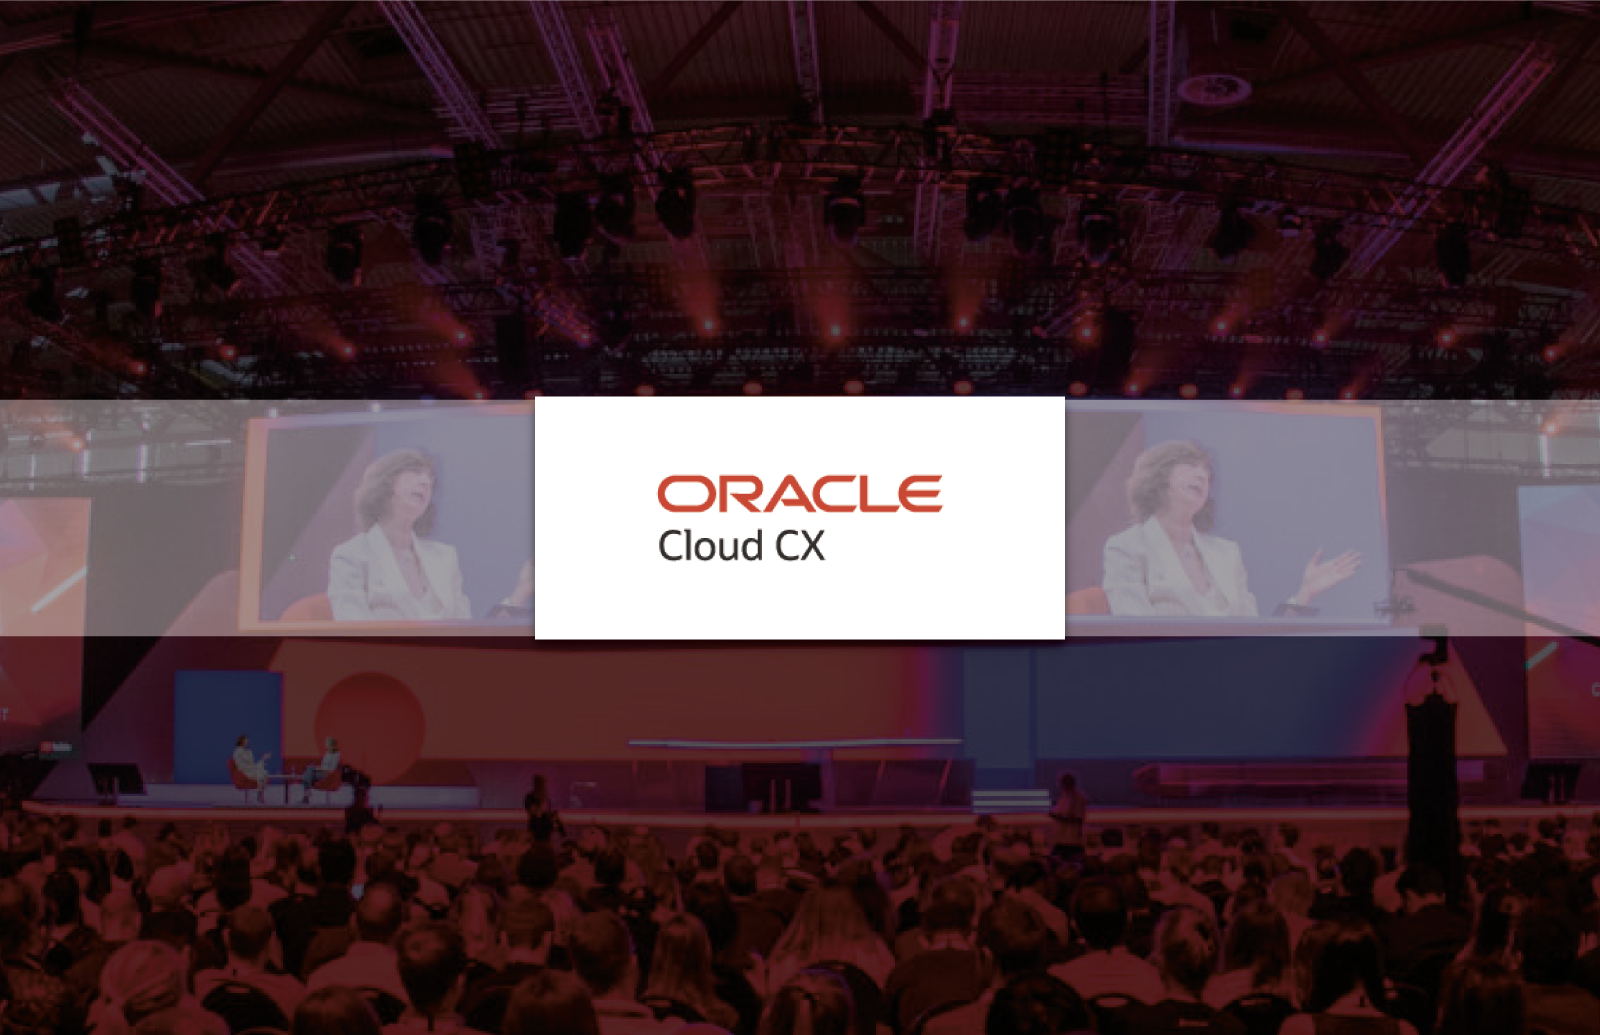 Thumbnail of https://dmexco.com/stories/oracle-in-an-interview-with-dmexco/